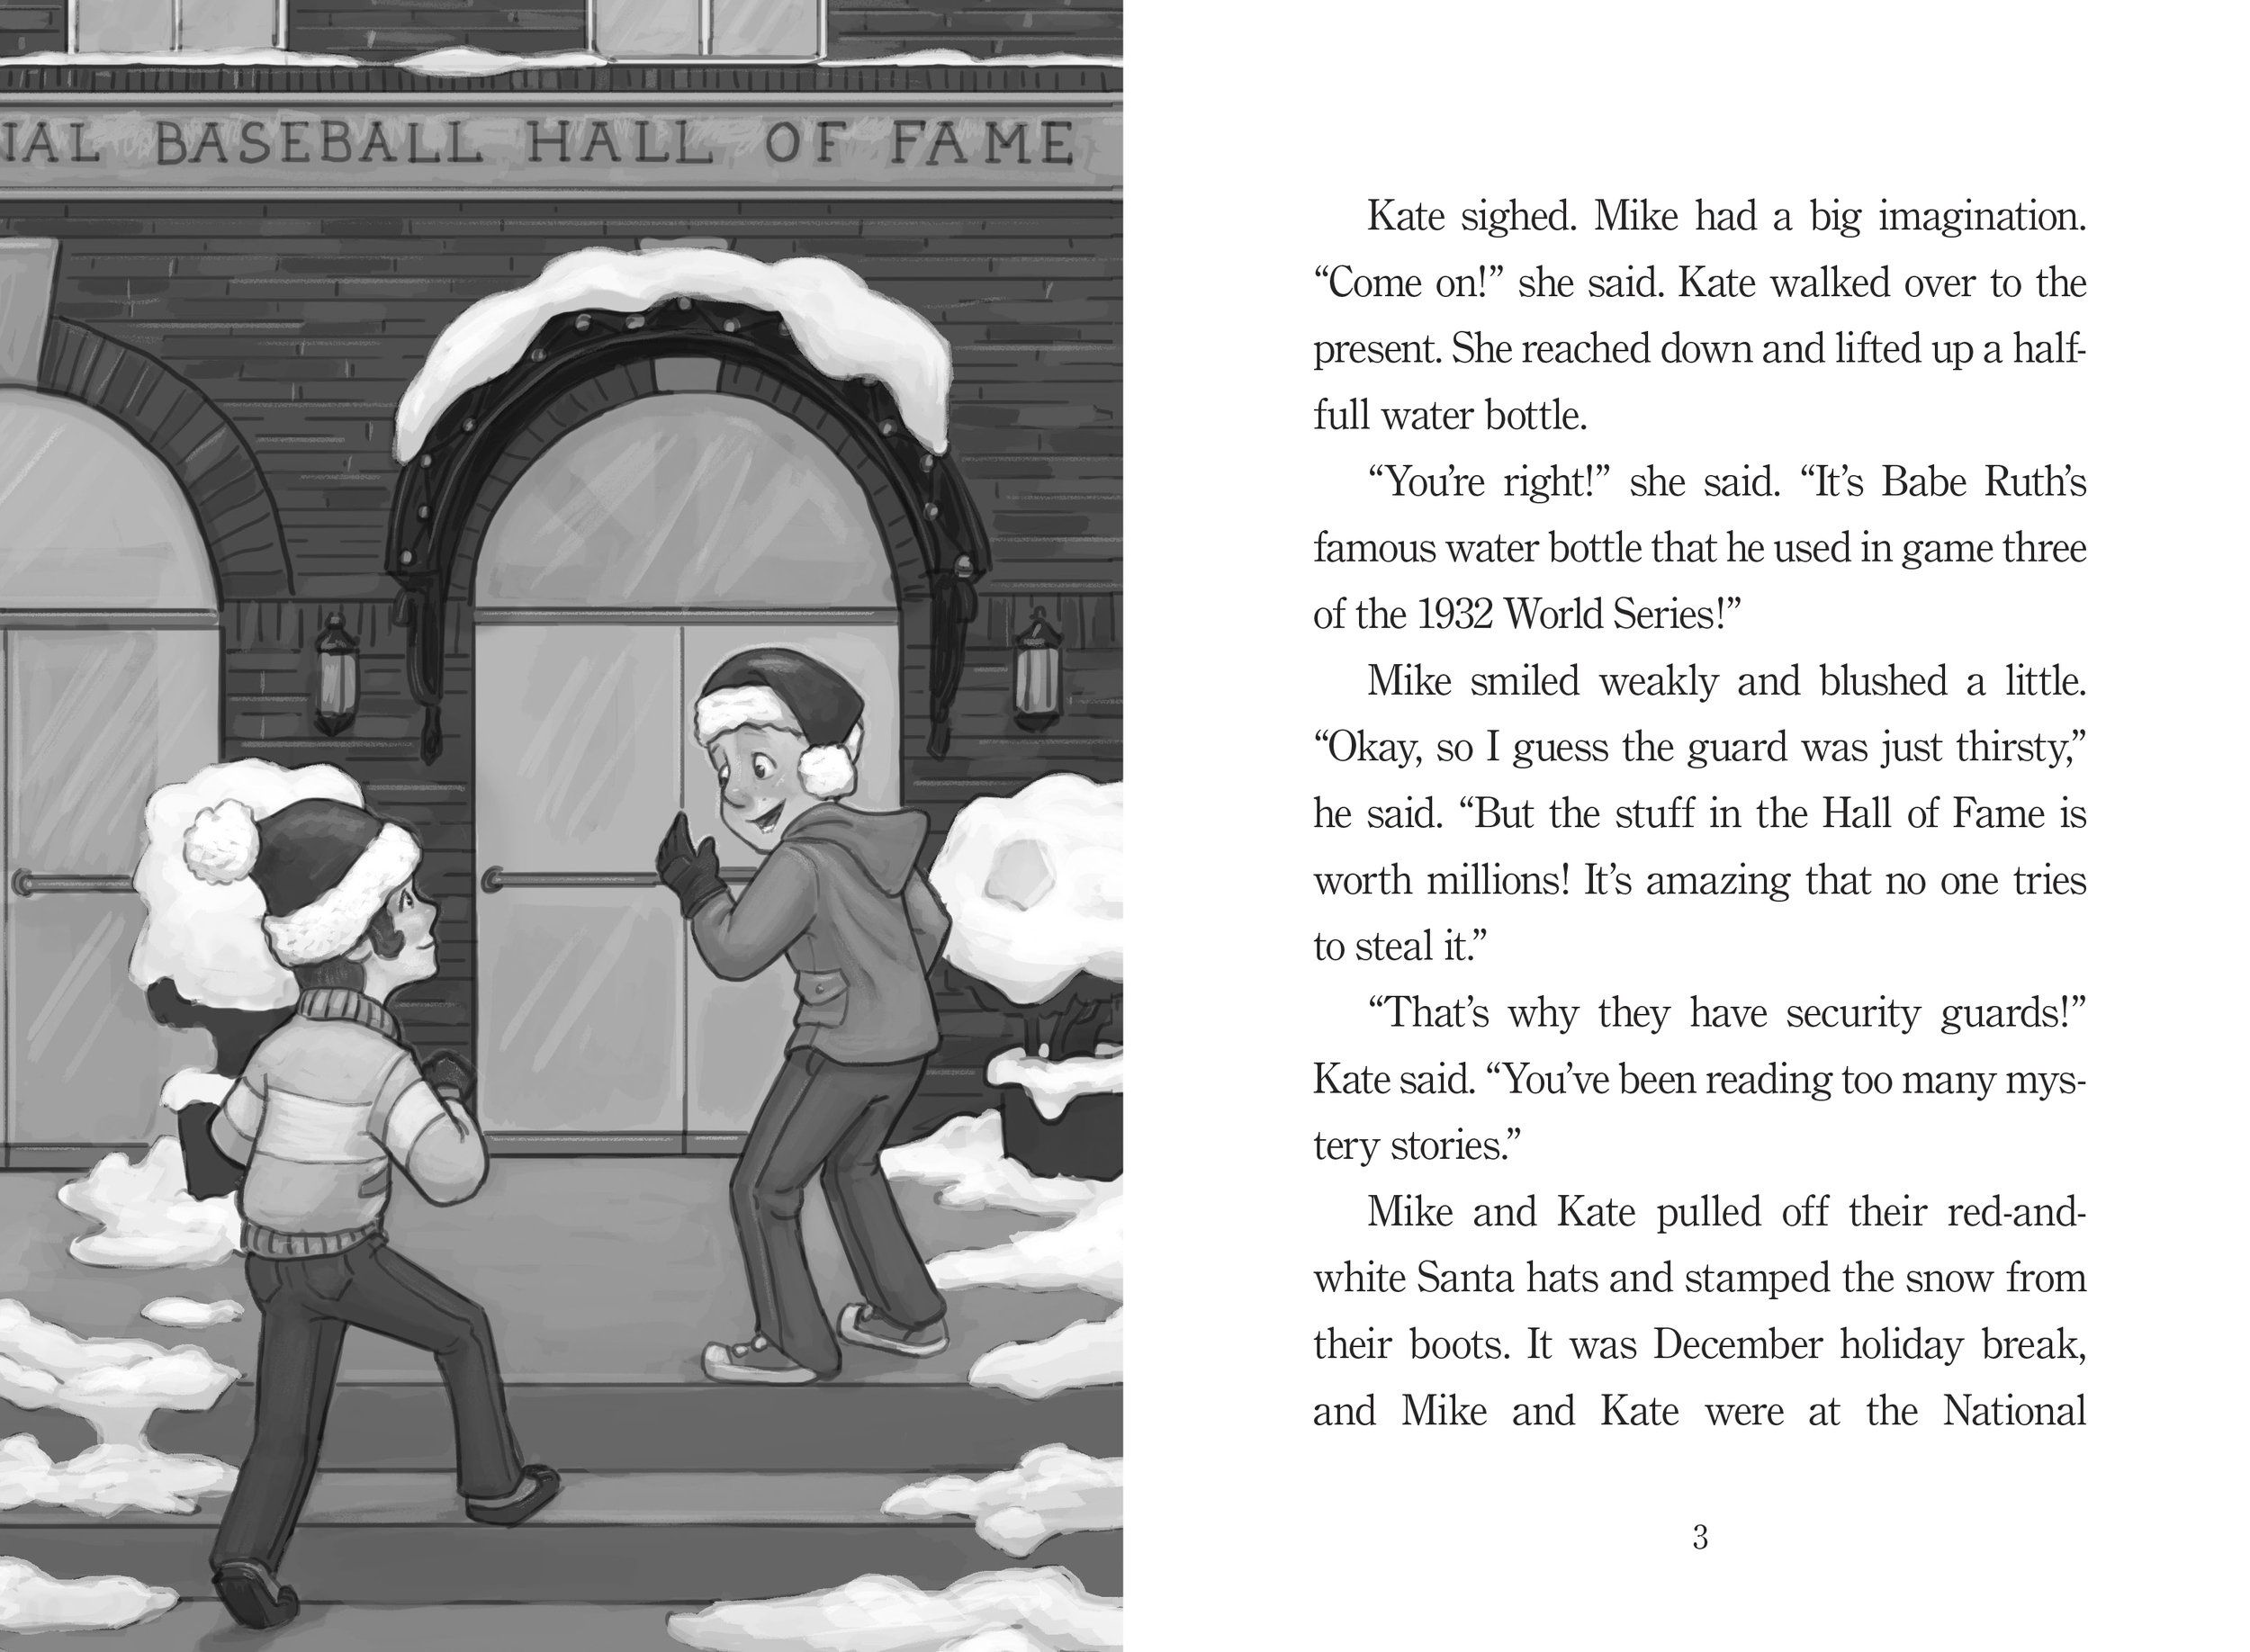 Interior from CHRISTMAS IN COOPERSTOWN by David Kelly, illus © 2017 Mark Meyers_pp 2-3.jpg